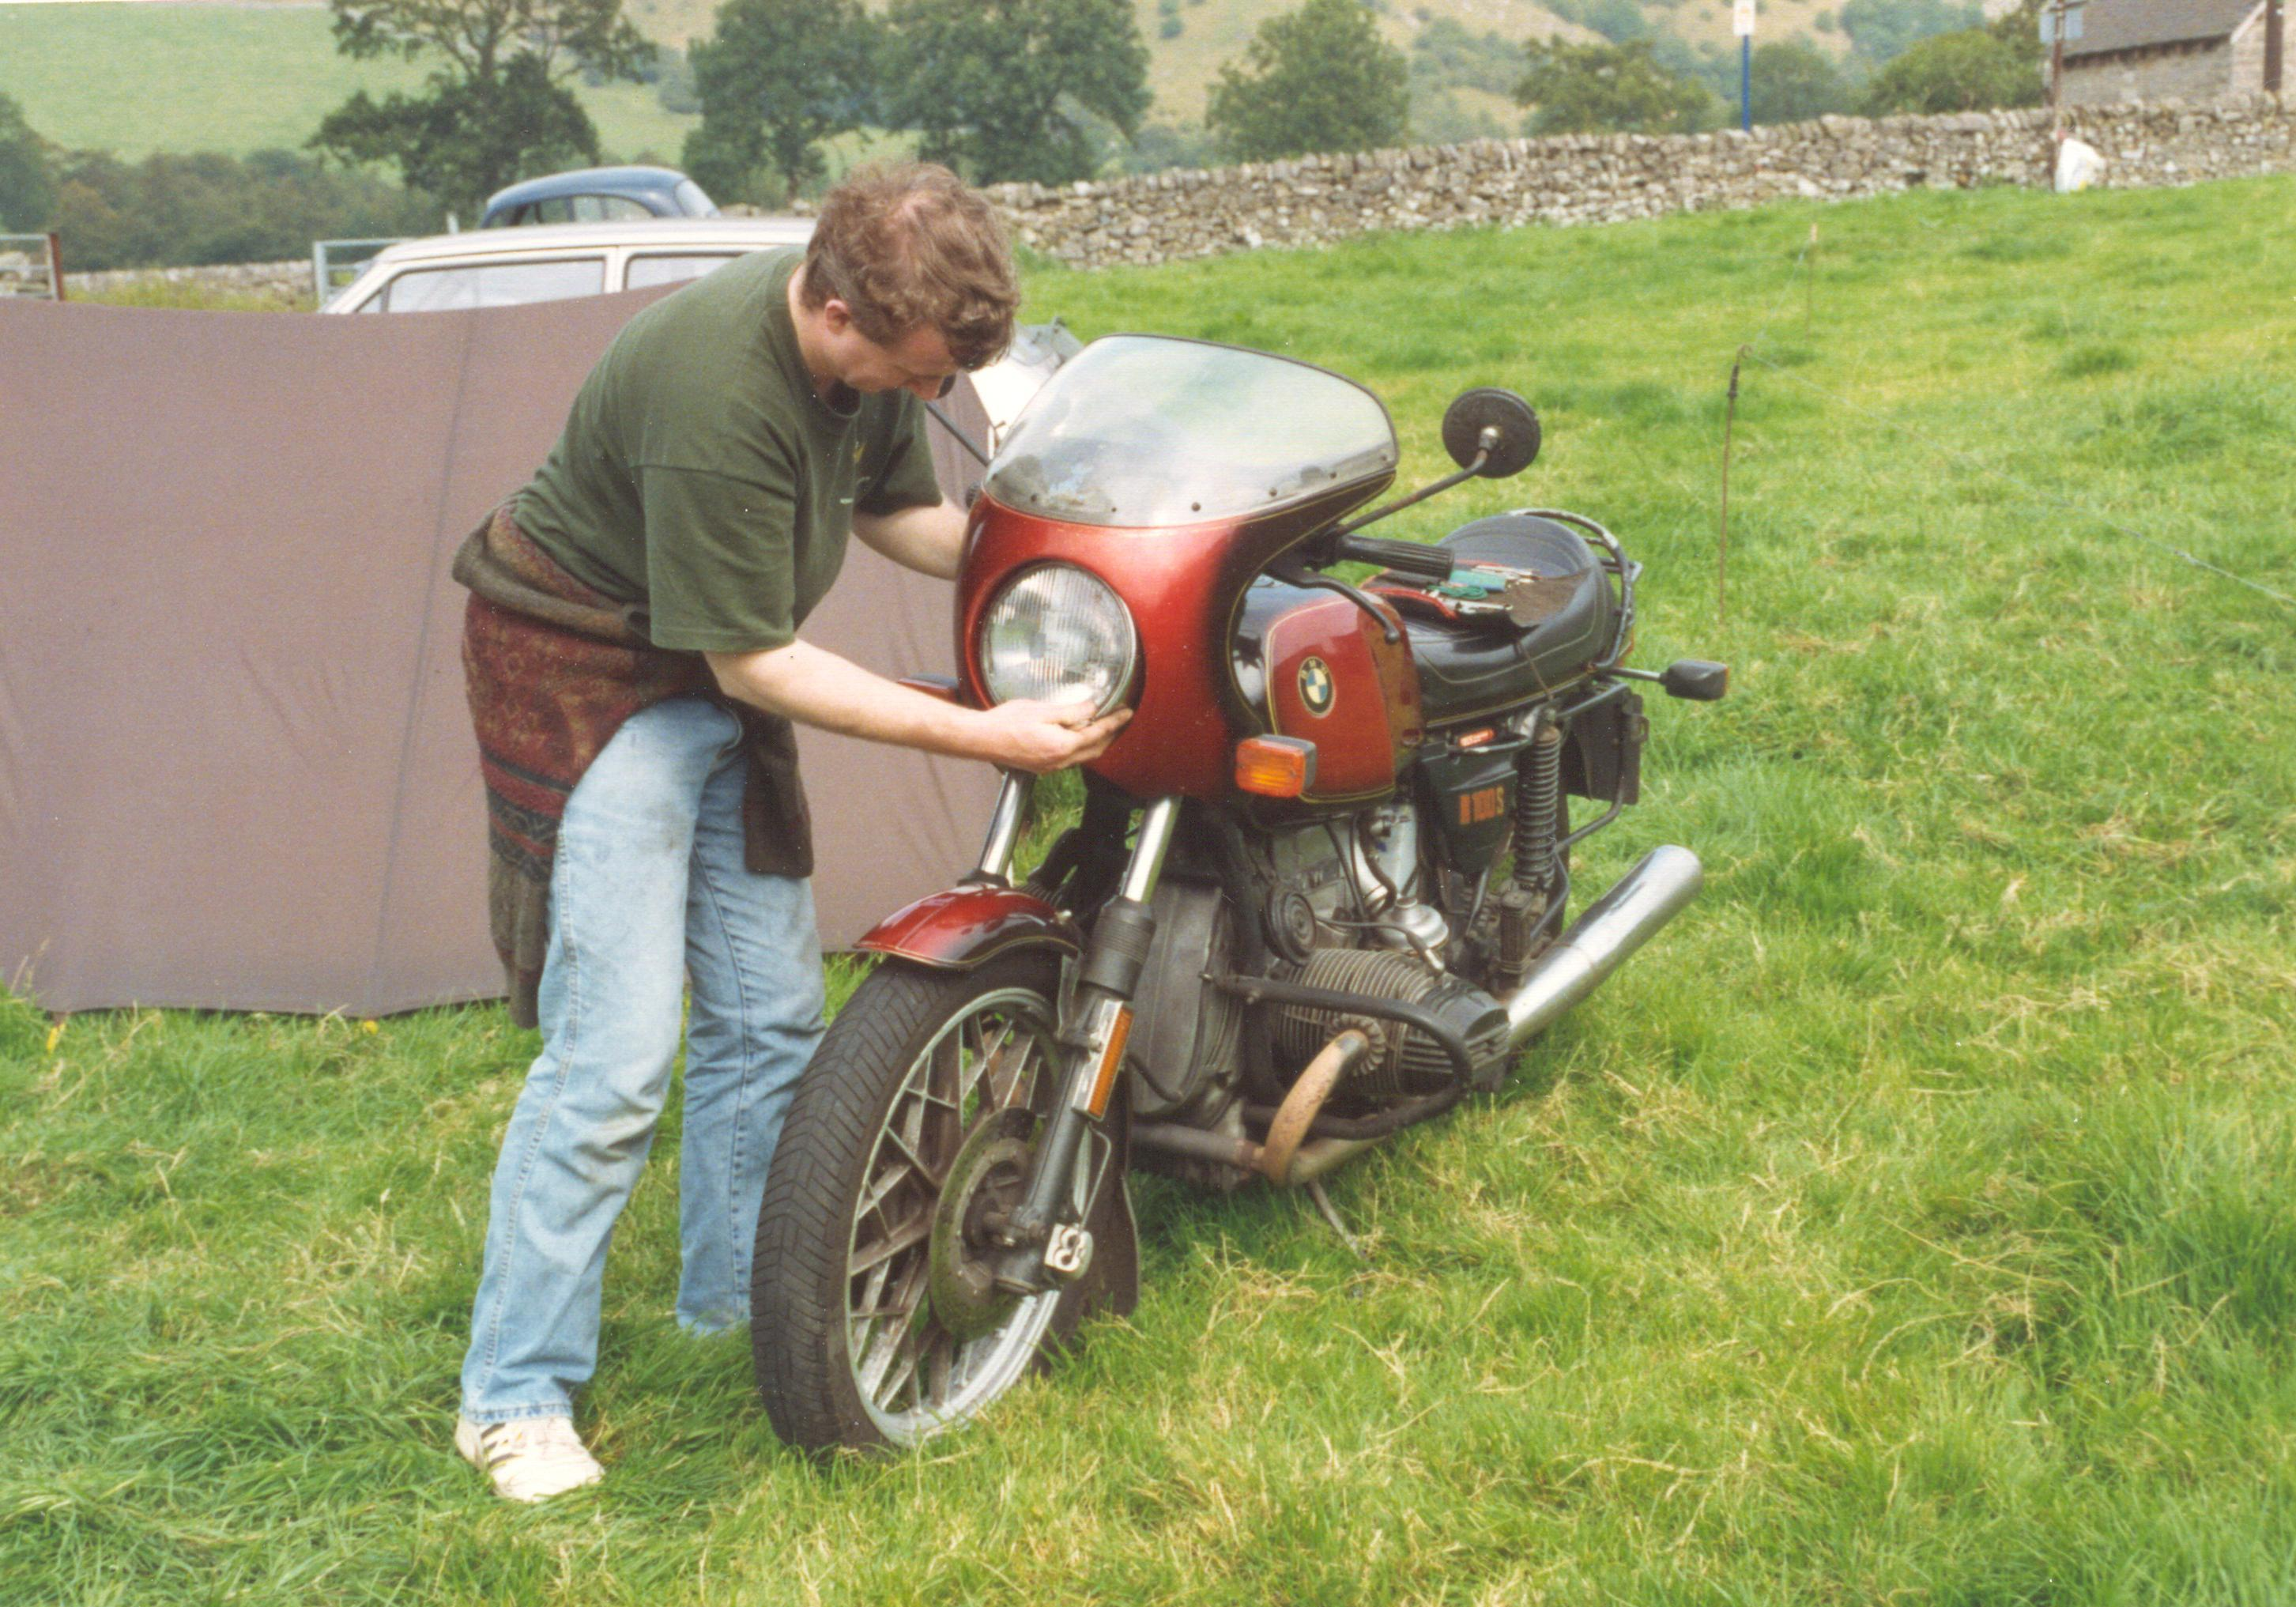 Alan R bike.jpg (708263 bytes)